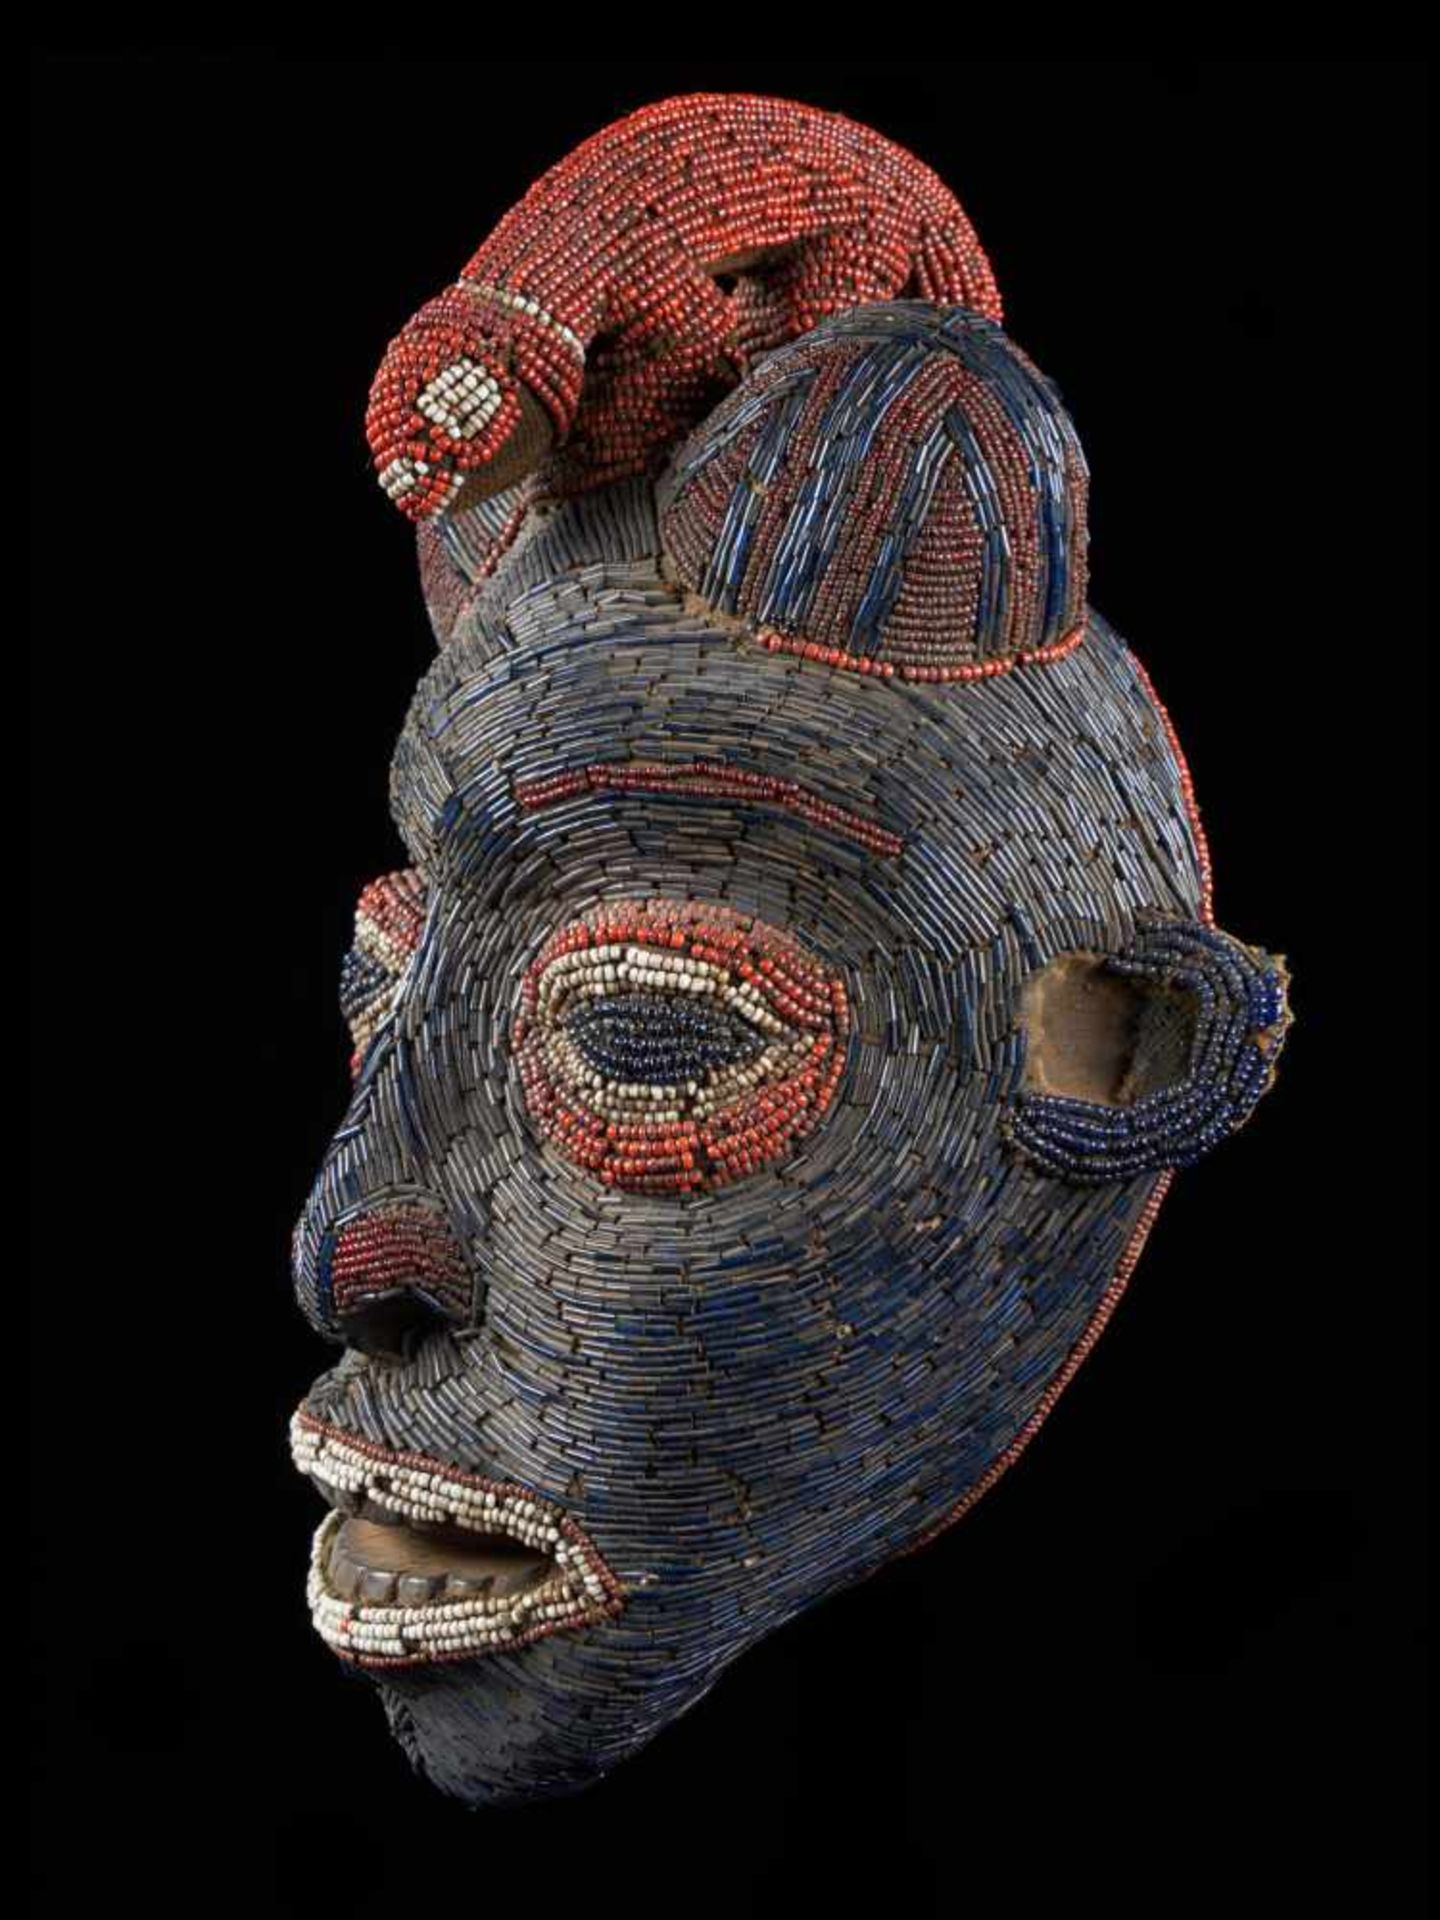 Facemask Topped With Leopard Figure - Tribal ArtAn exquisite blue face mask. This wooden mask is - Bild 3 aus 6